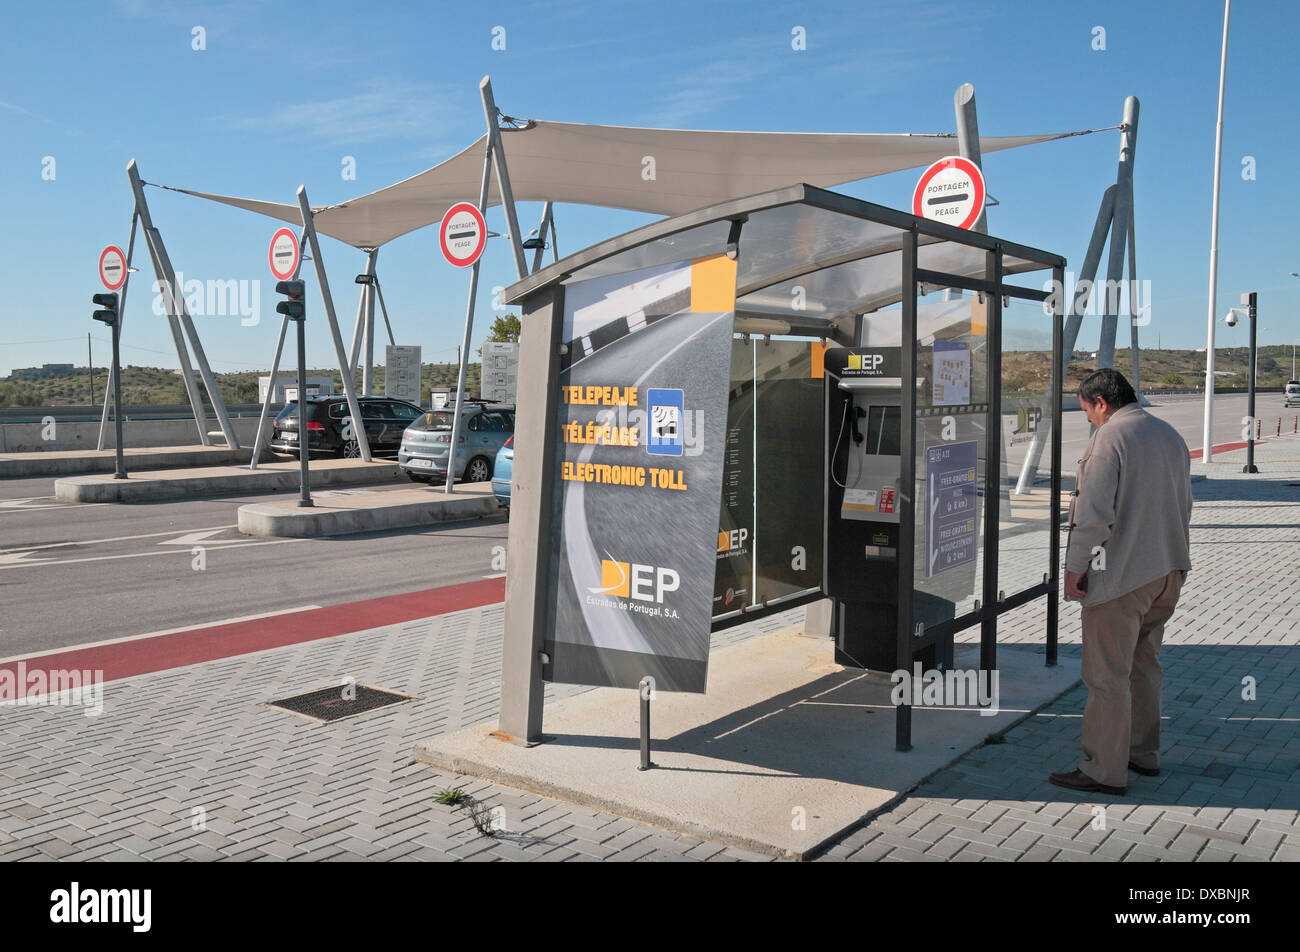 Man reading the instructions at an Electronic Toll point on the A22 motorway in southern Portugal (Algave). - Stock Image